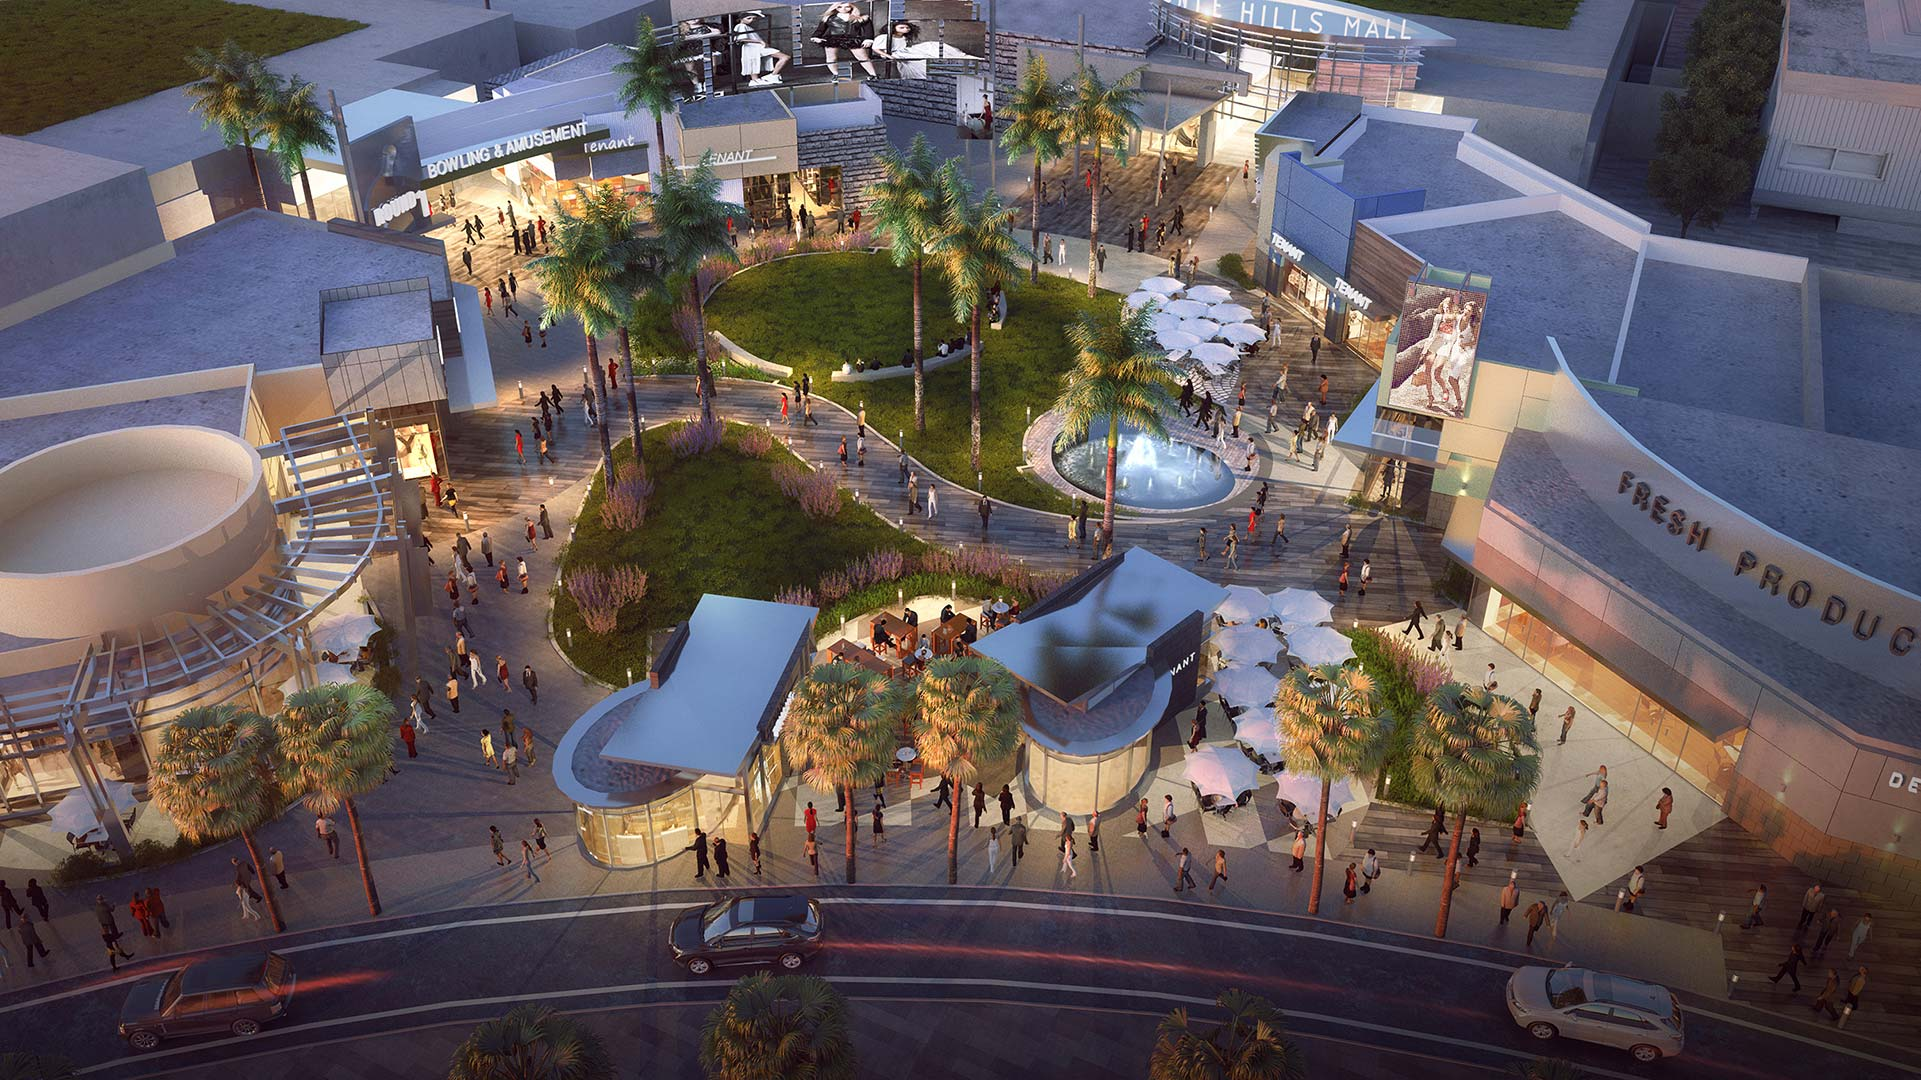 Puente Hills Mall-McKently_Malak_Architects_RE (4)